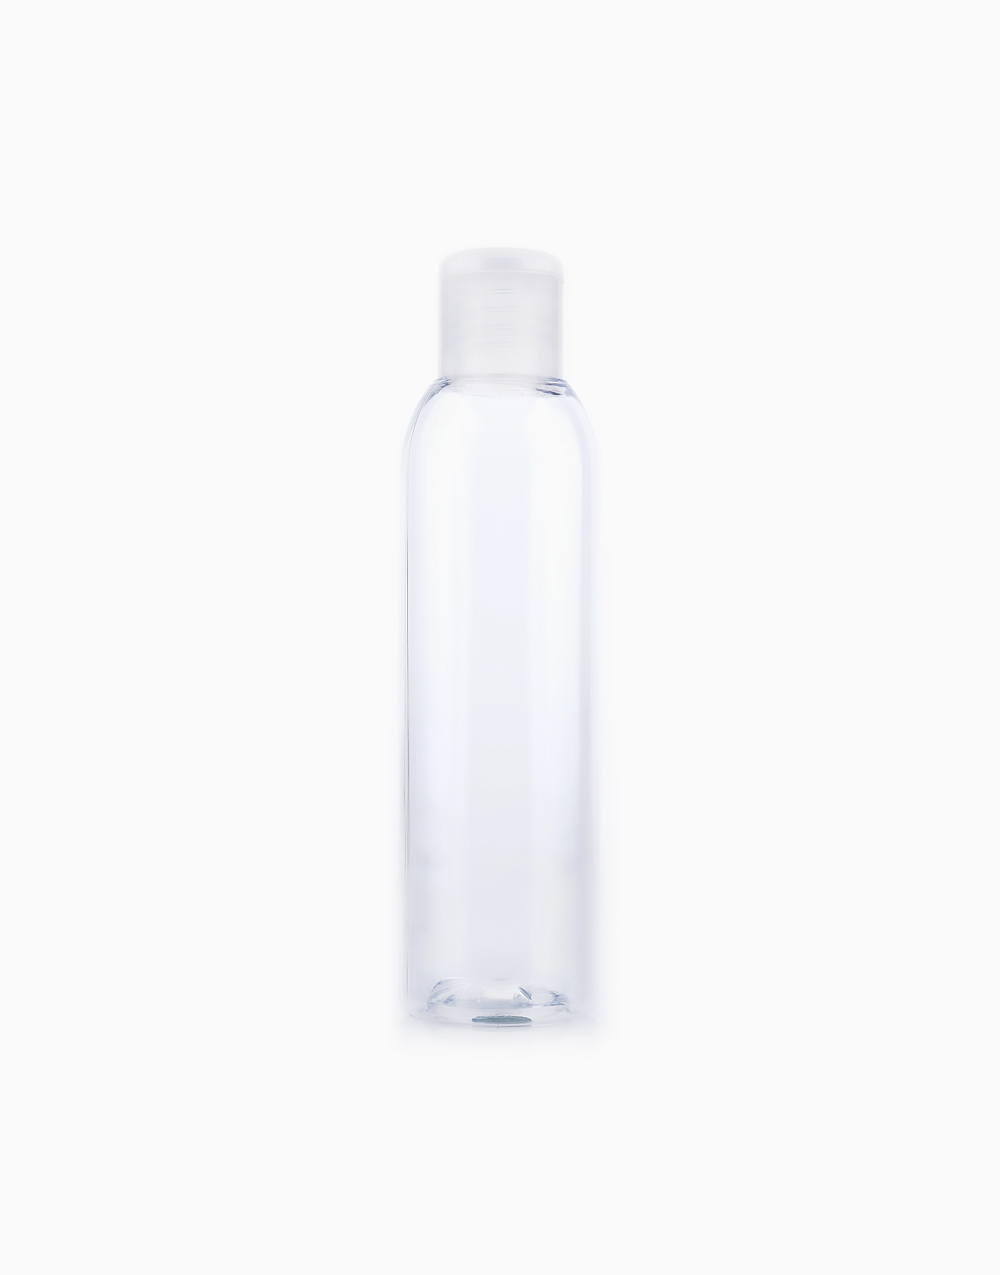 Refillable Empty Bottle (100ml) by Honest Tools